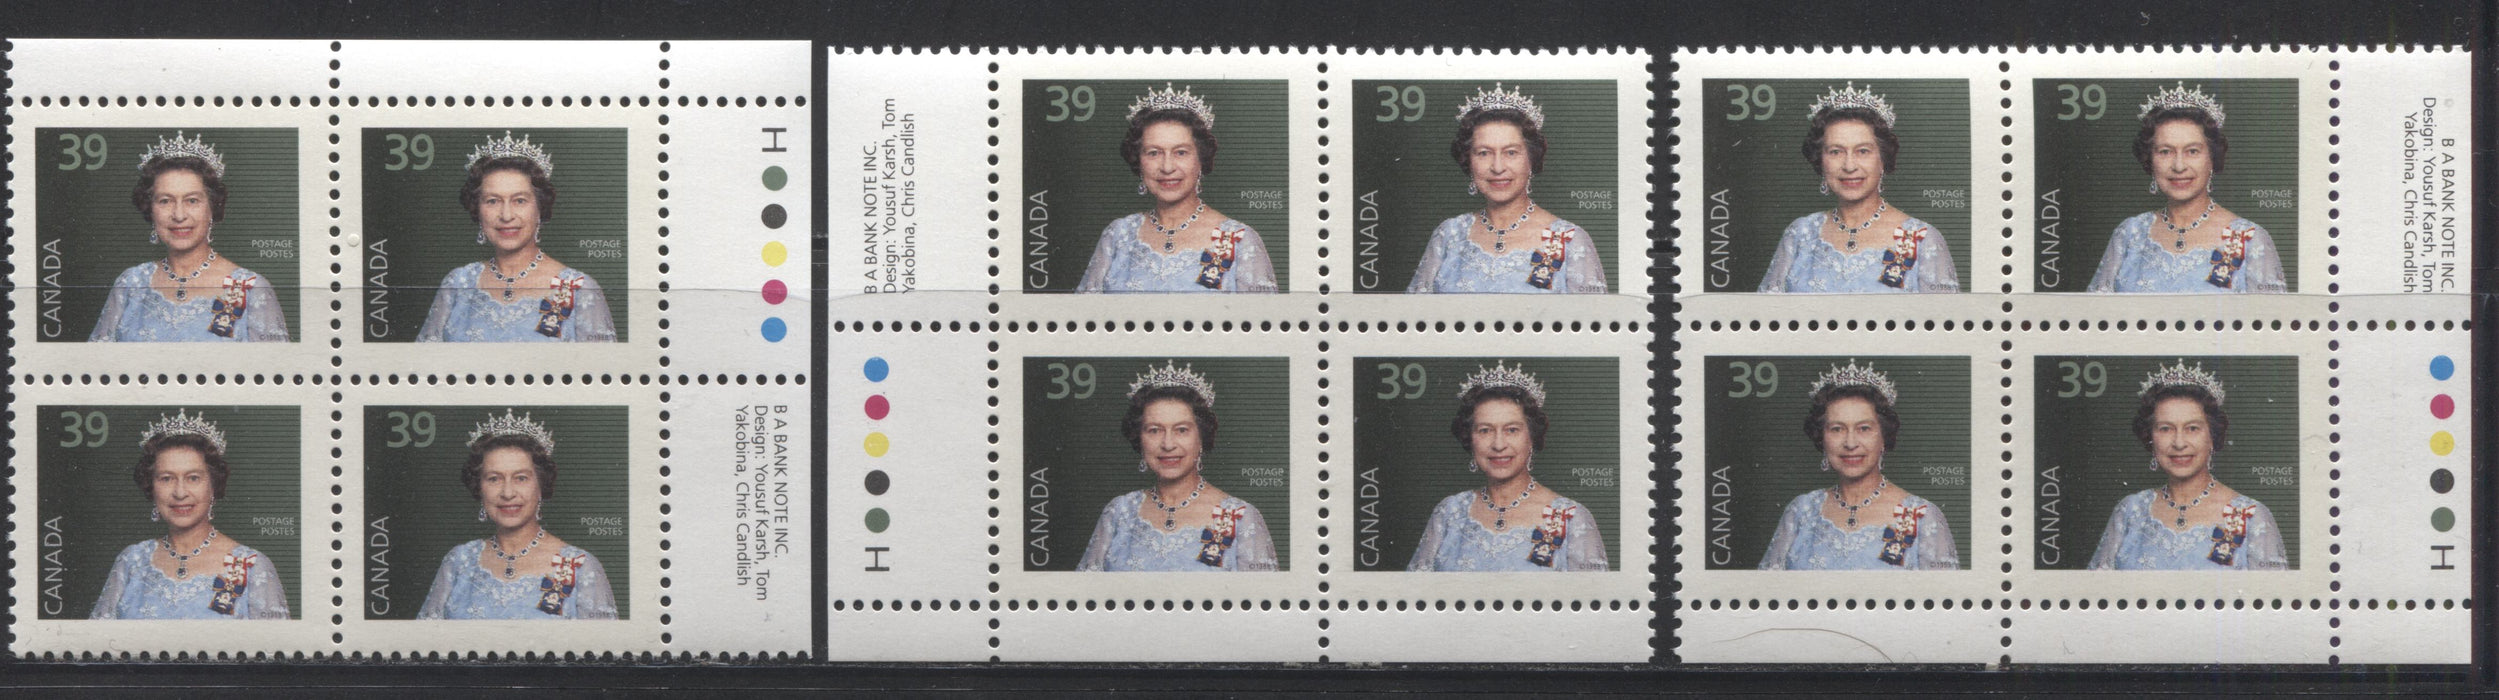 Canada #1167 39c Queen Elizabeth II 1988-1991 Wildlife and Architecture Issue, VFNH UR, LL and LR Inscription Blocks on NF/LF Harrison Paper